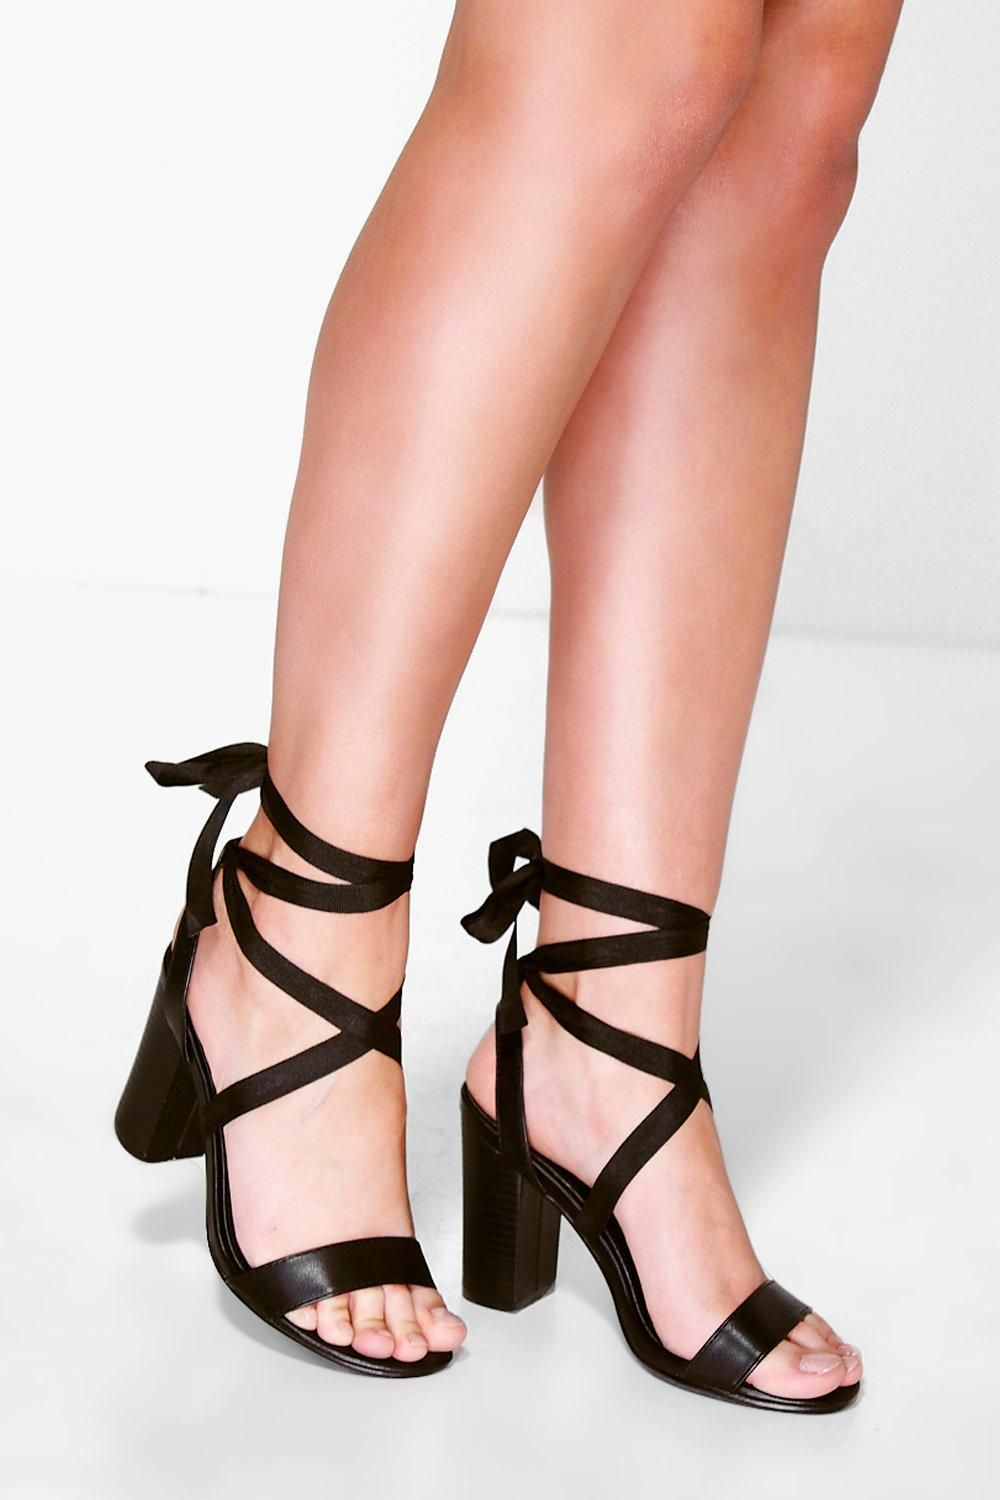 d3bfa5cd2bb1 Ava Two Part Wrap Strap Block Heel Gladiator Sandals